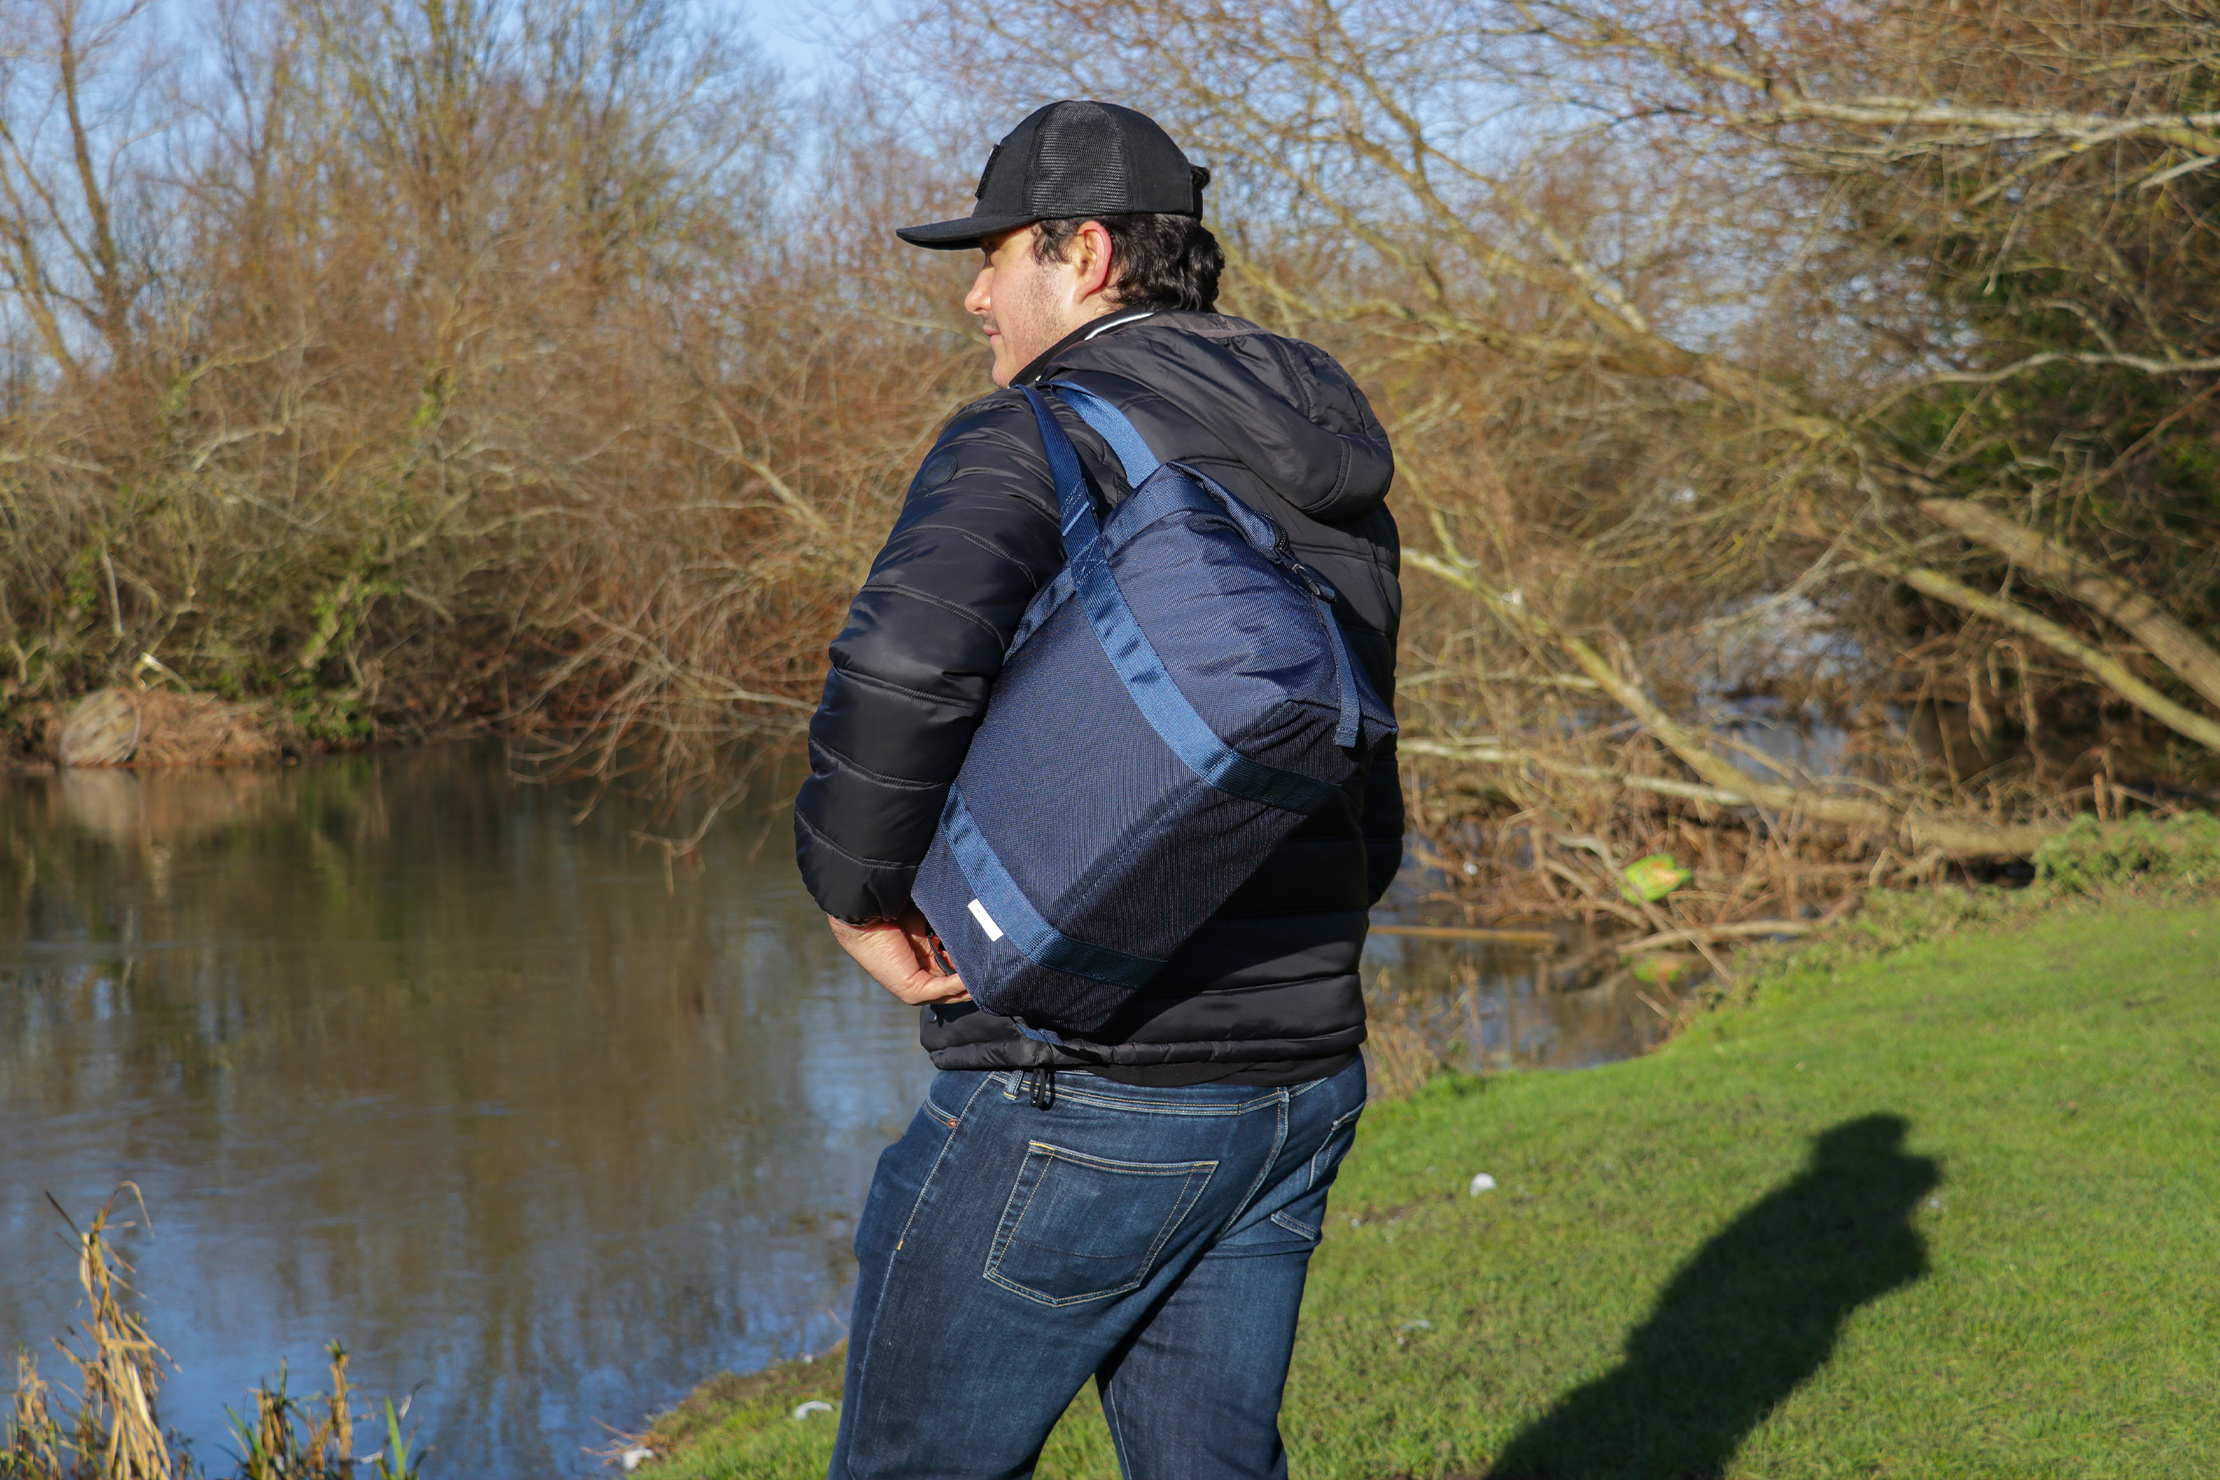 DSPTCH Utility Tote | It certainly looks beefier than most tote bags